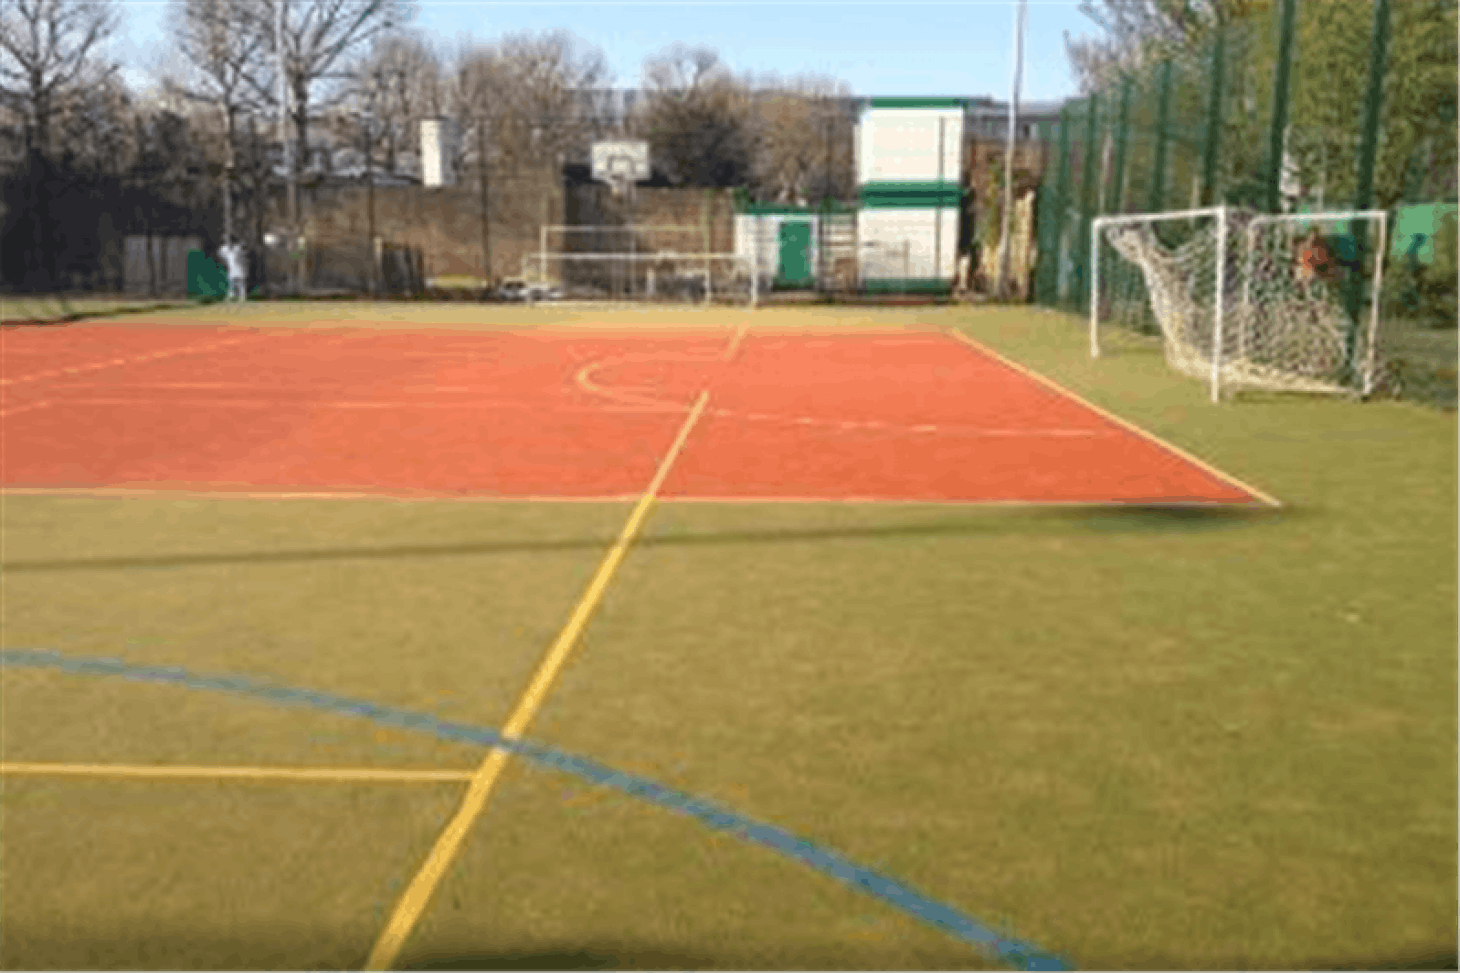 Westbourne Park Astroturf 5 a side | Astroturf football pitch